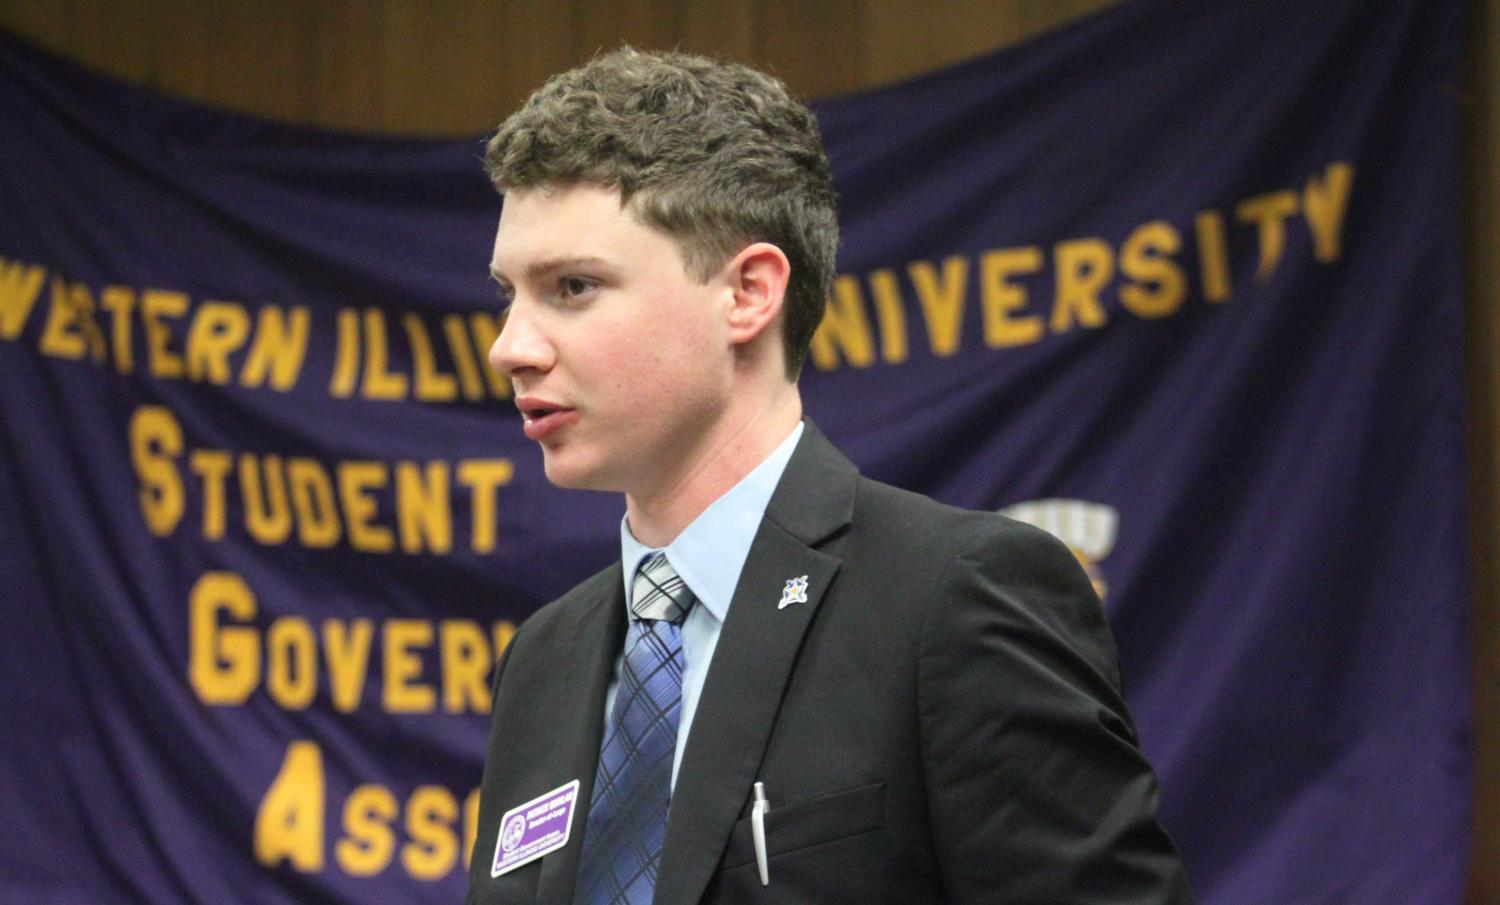 Student Government Association (SGA) Senator at-Large Patrick Quinlan motions for SGA to move into an executive session to discuss Jason Wood's nomination as SGA faculty adviser with the purpose of allowing senators to speak free from outside influence.